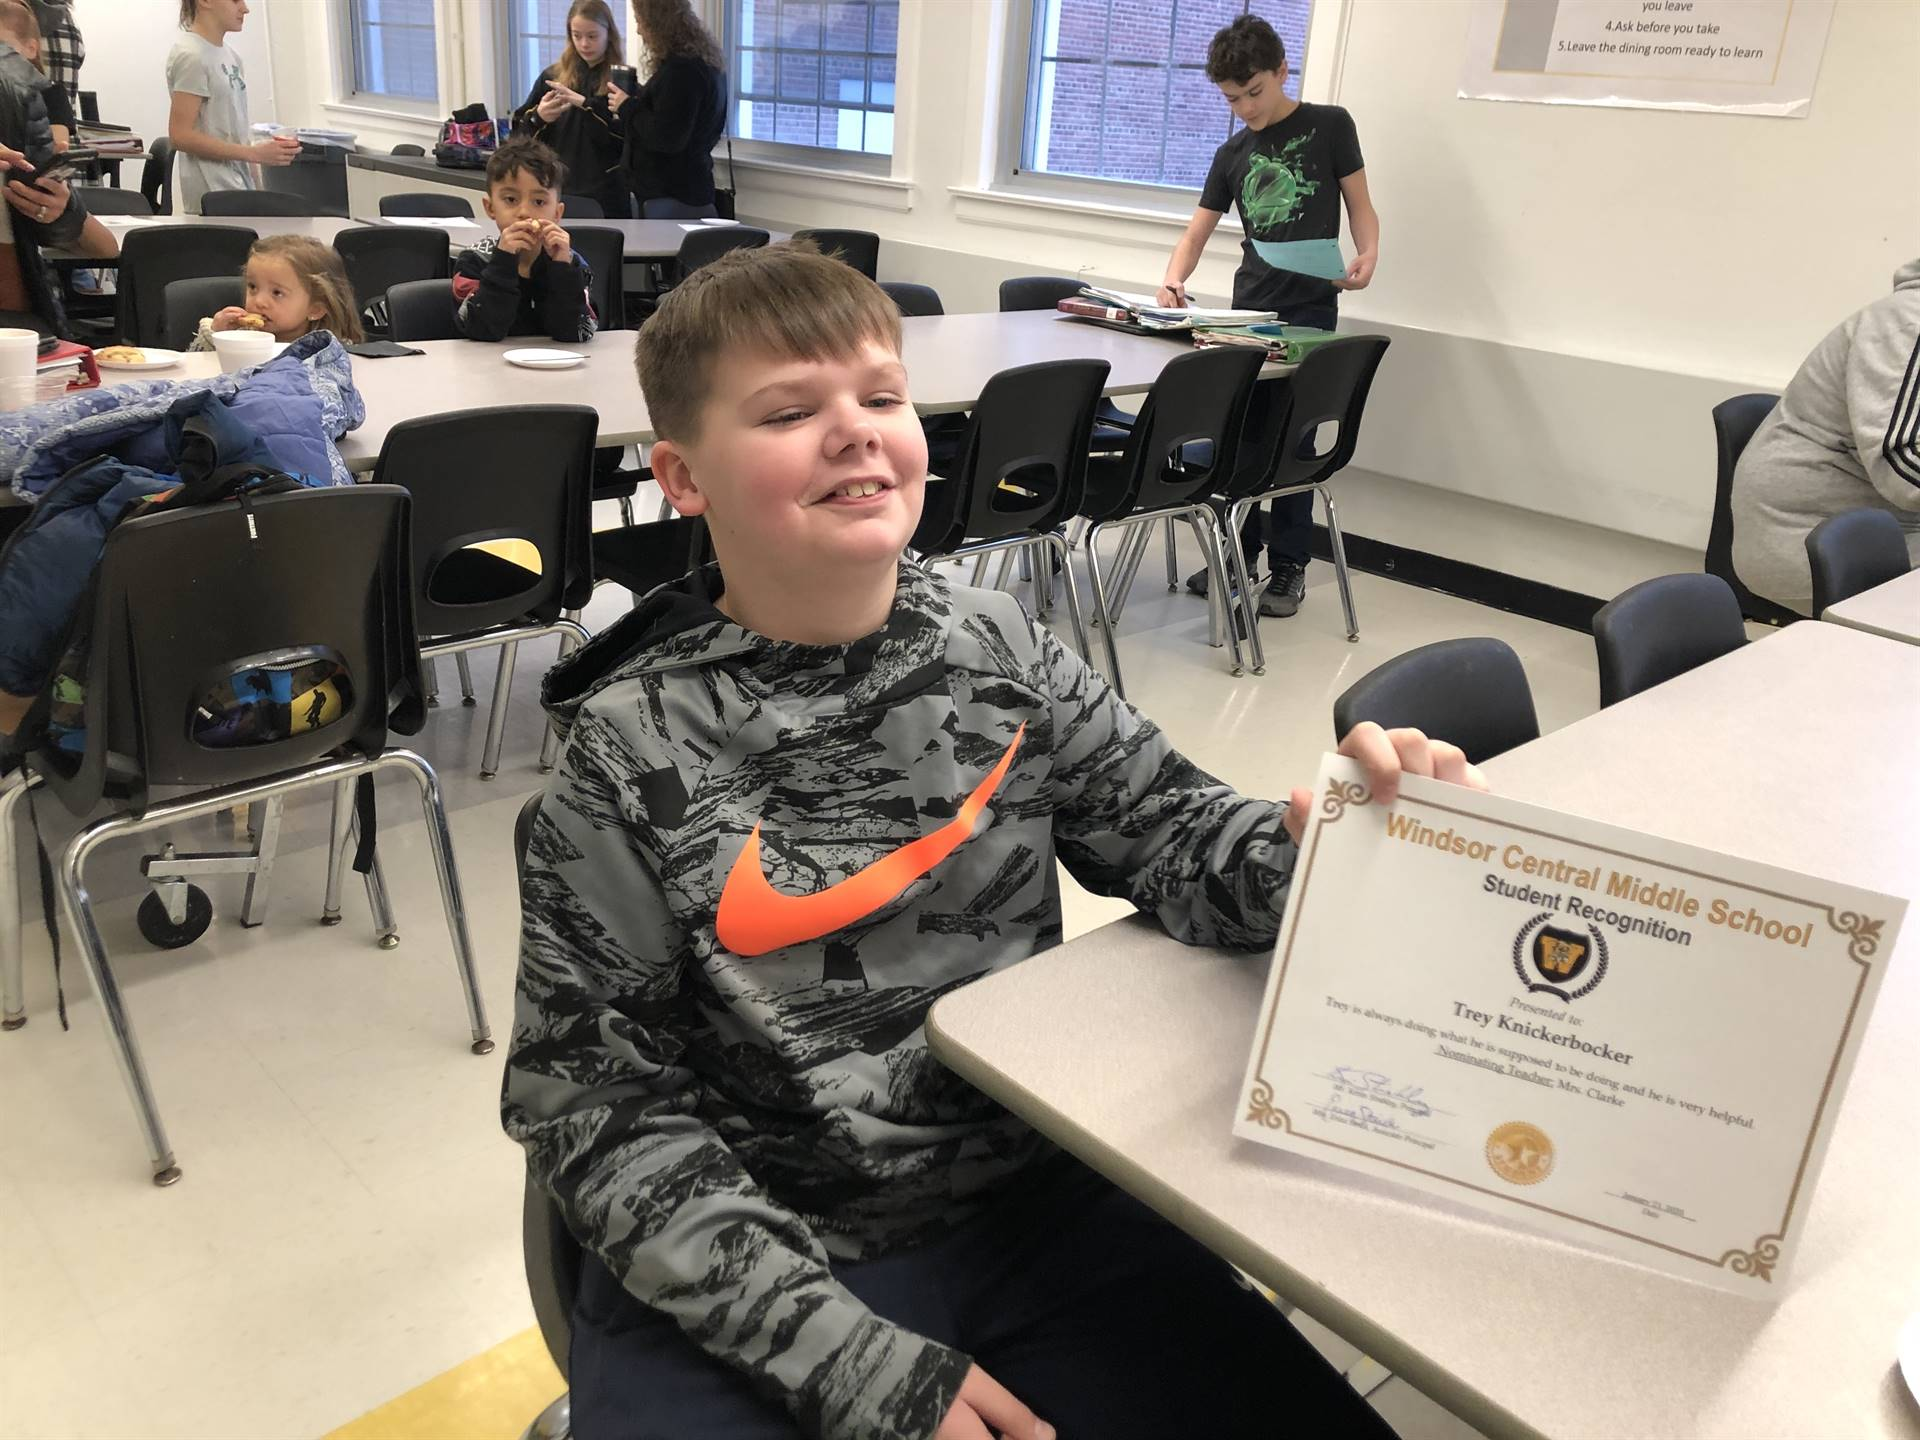 A boy sitting, holding a certificate